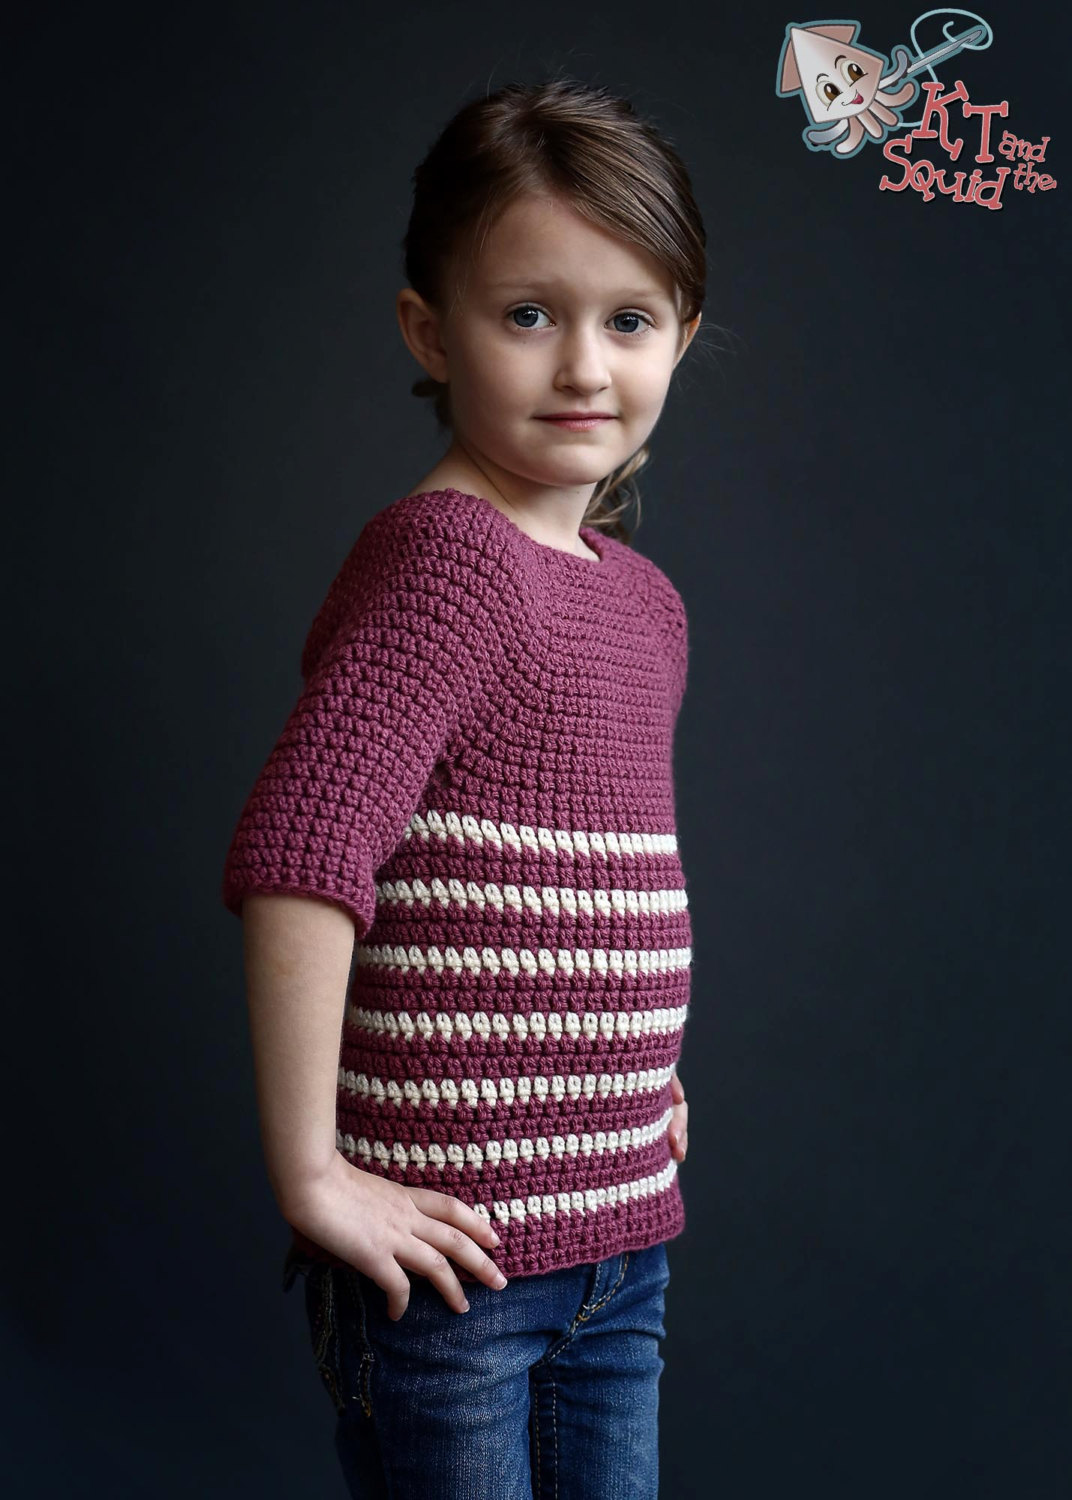 Kayla Sweater Girls Crochet Pattern Kt And The Squid